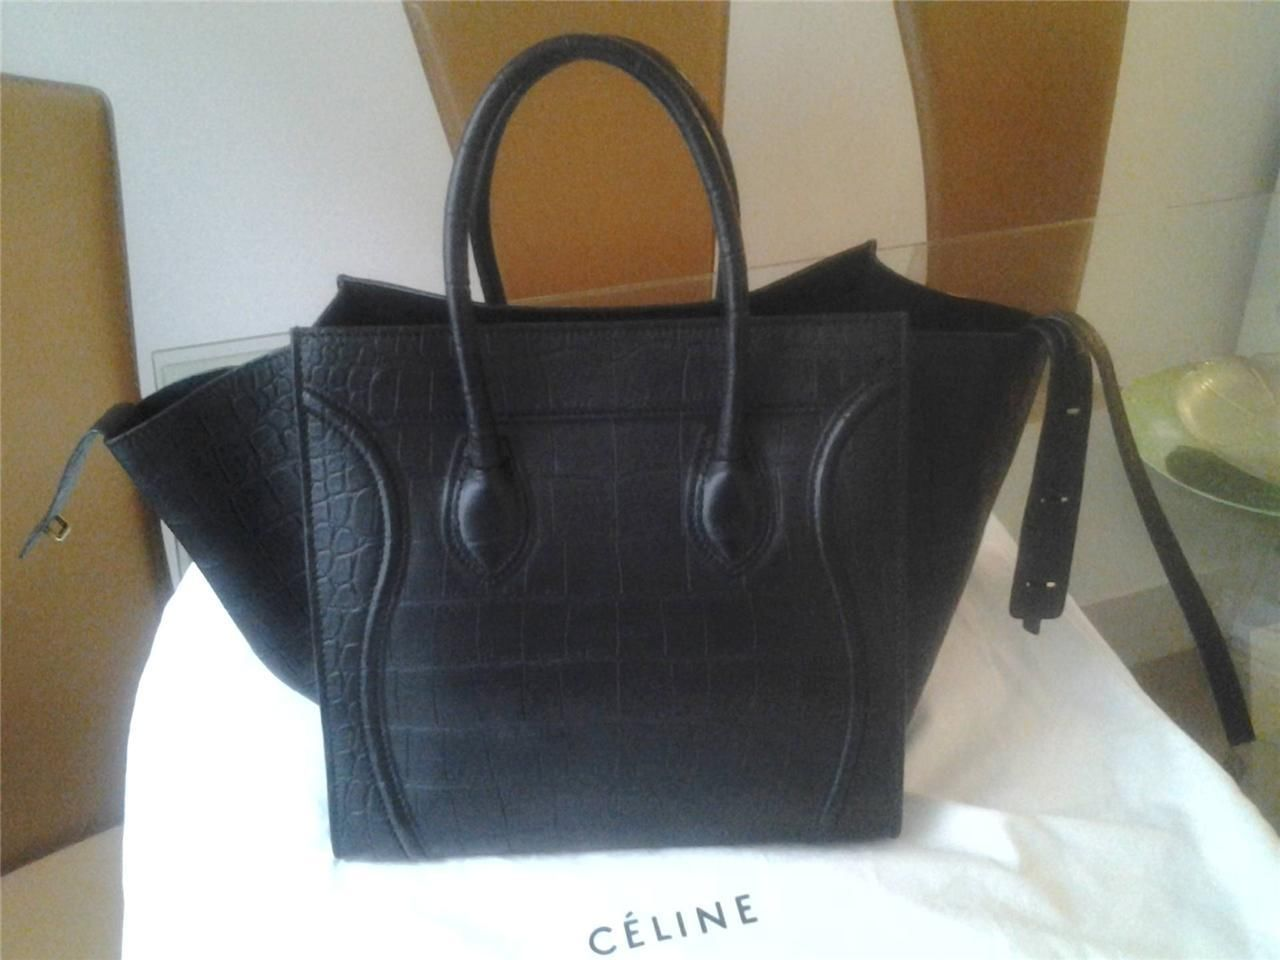 NEW CELINE CROC EMBOSSED PHANTOM BLACK LEATHER TOTE BAG LUGGAGE - Handbags & Purses